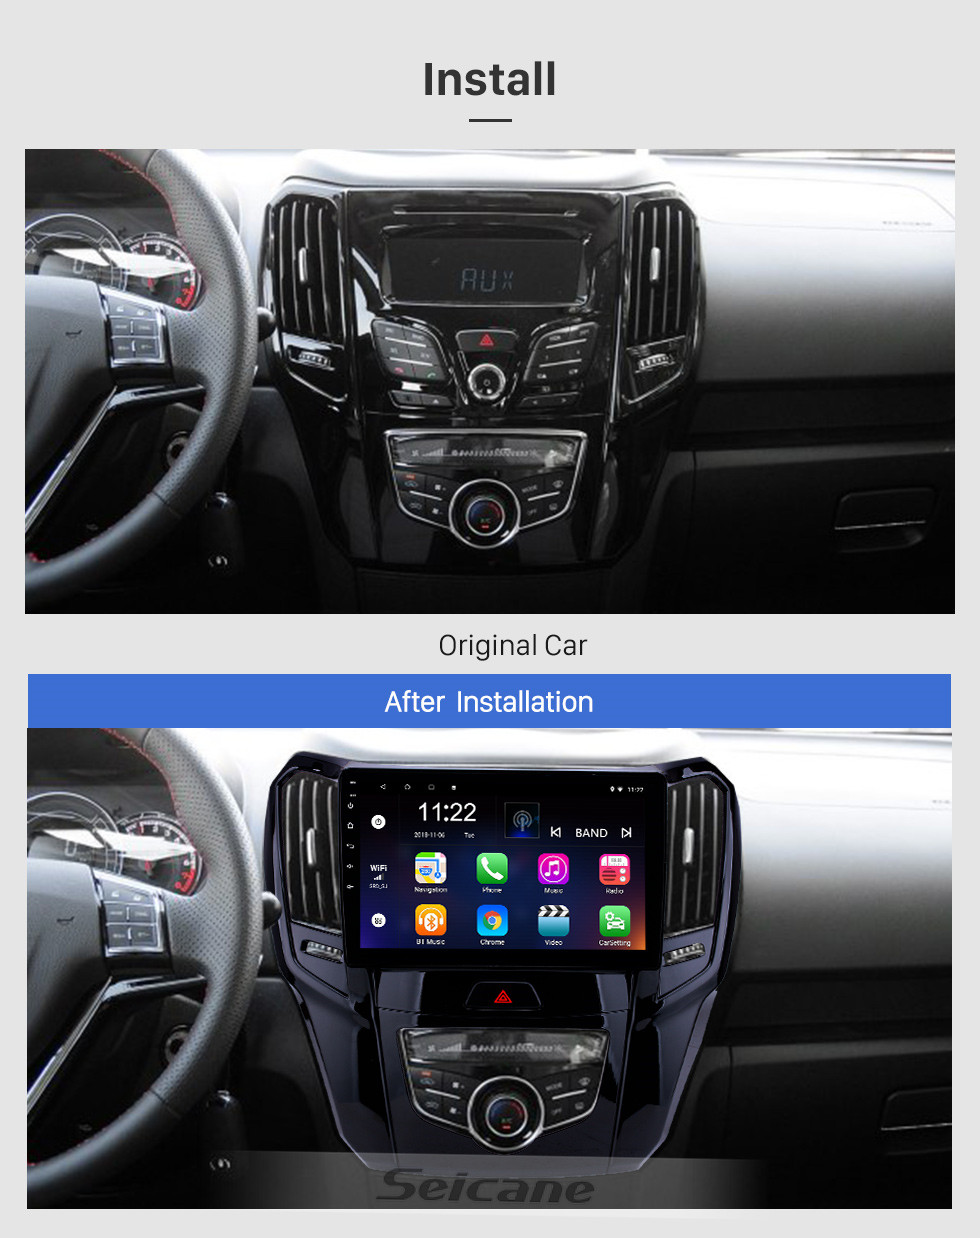 Seicane 10.1 pulgadas Android 10.0 HD Pantalla táctil Navegación GPS Radio para 2014 2015 Great Wall M4 con Bluetooth USB WIFI AUX support Carplay TPMS Mirror Link